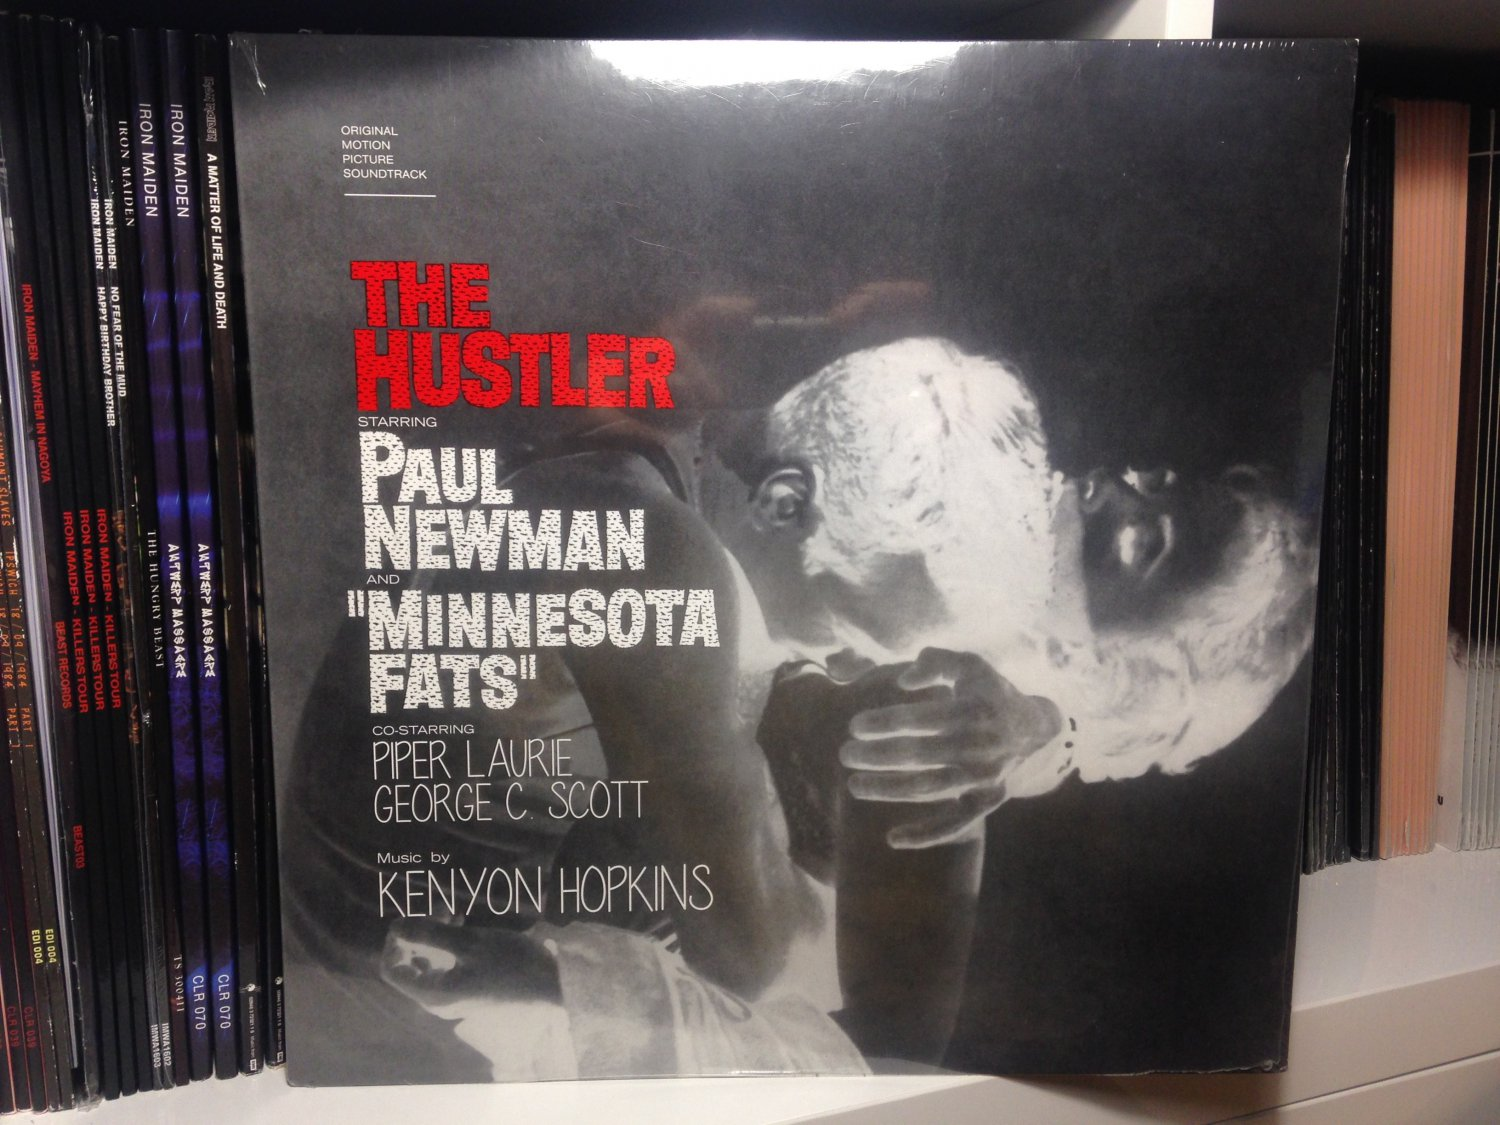 KENYON HOPKINS LP the hustler soundtrack